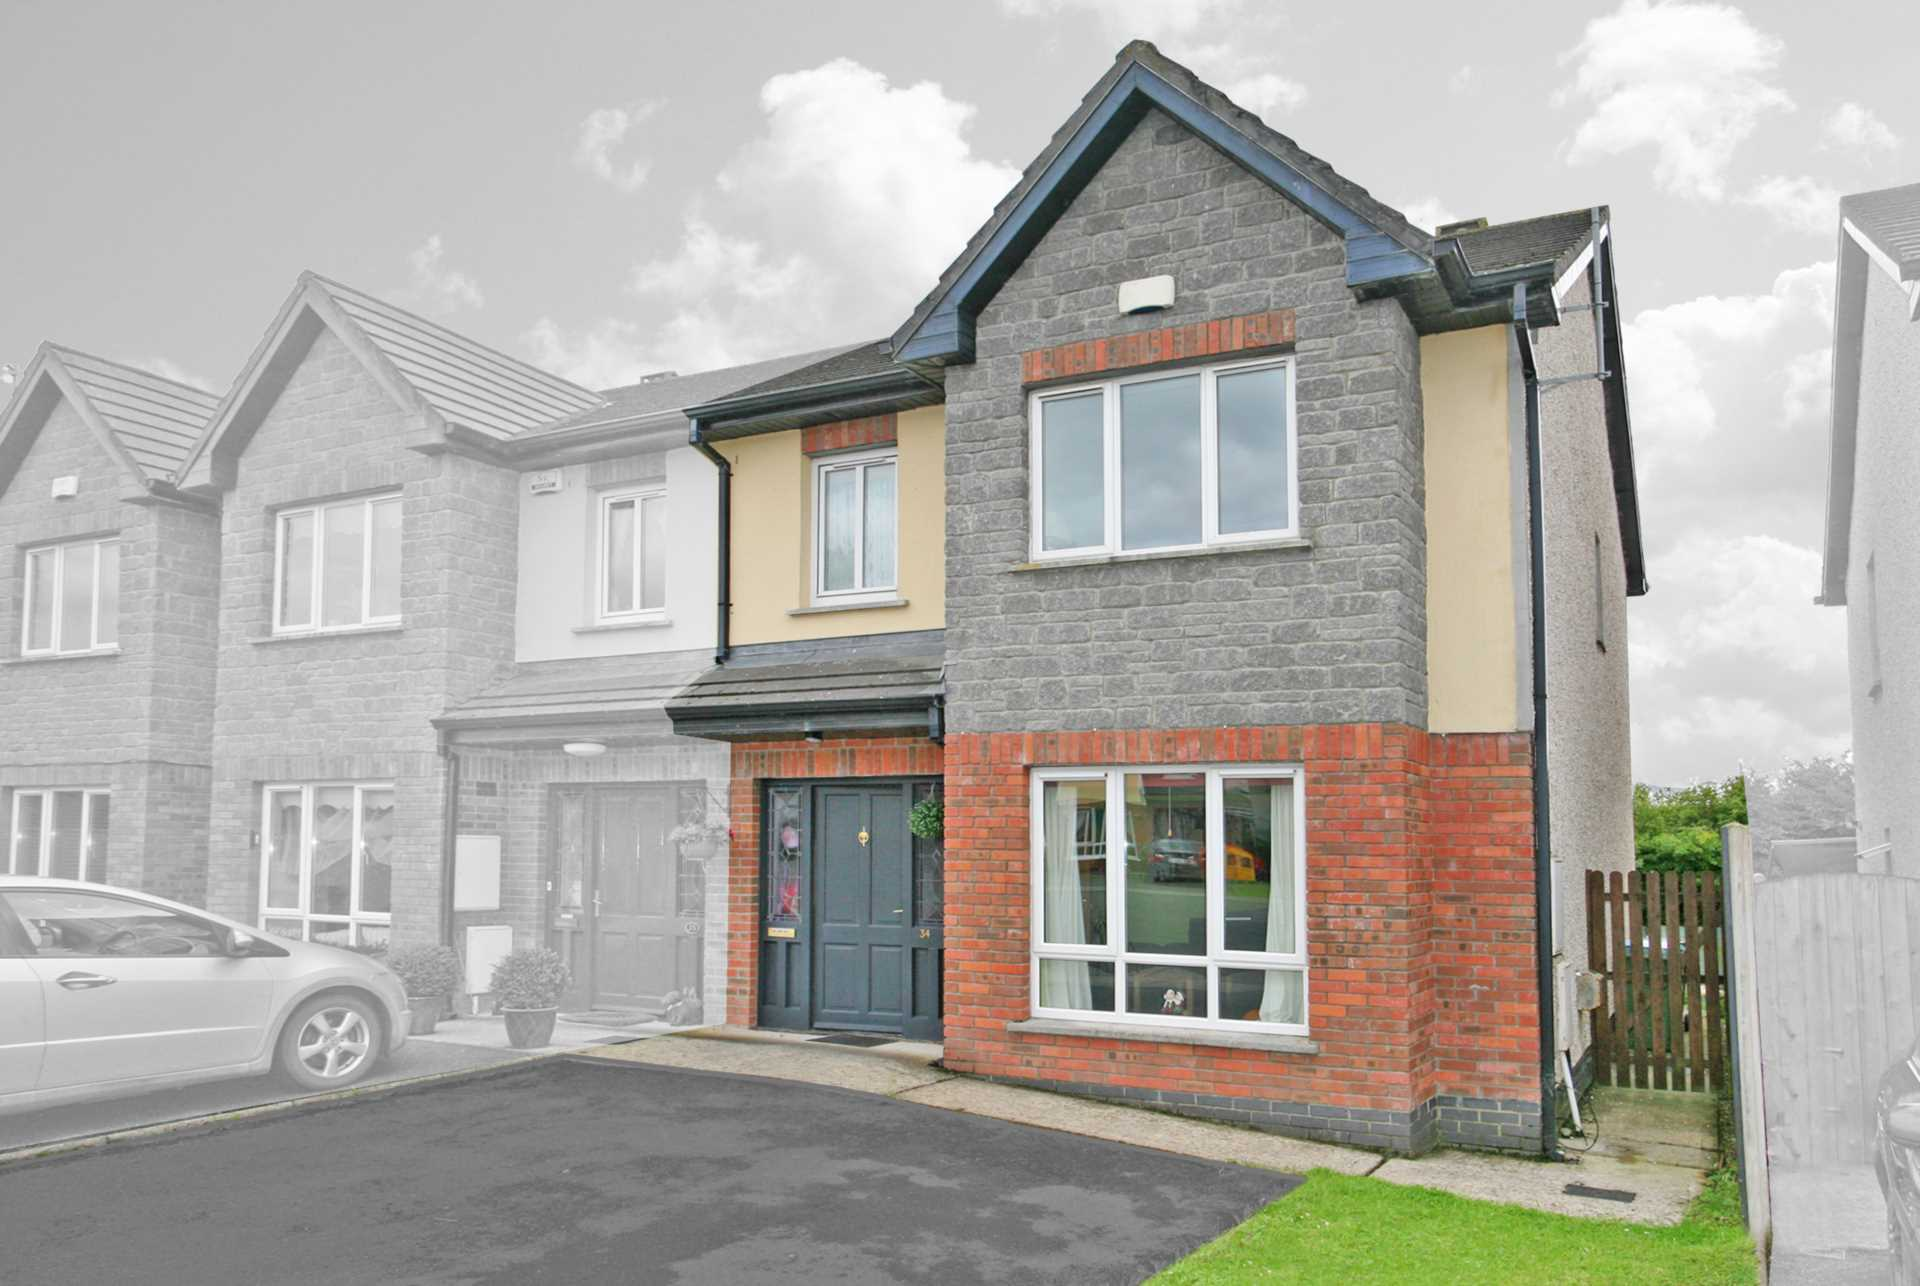 34 Ashfort, Golf Links Road Castletroy, Co. Limerick